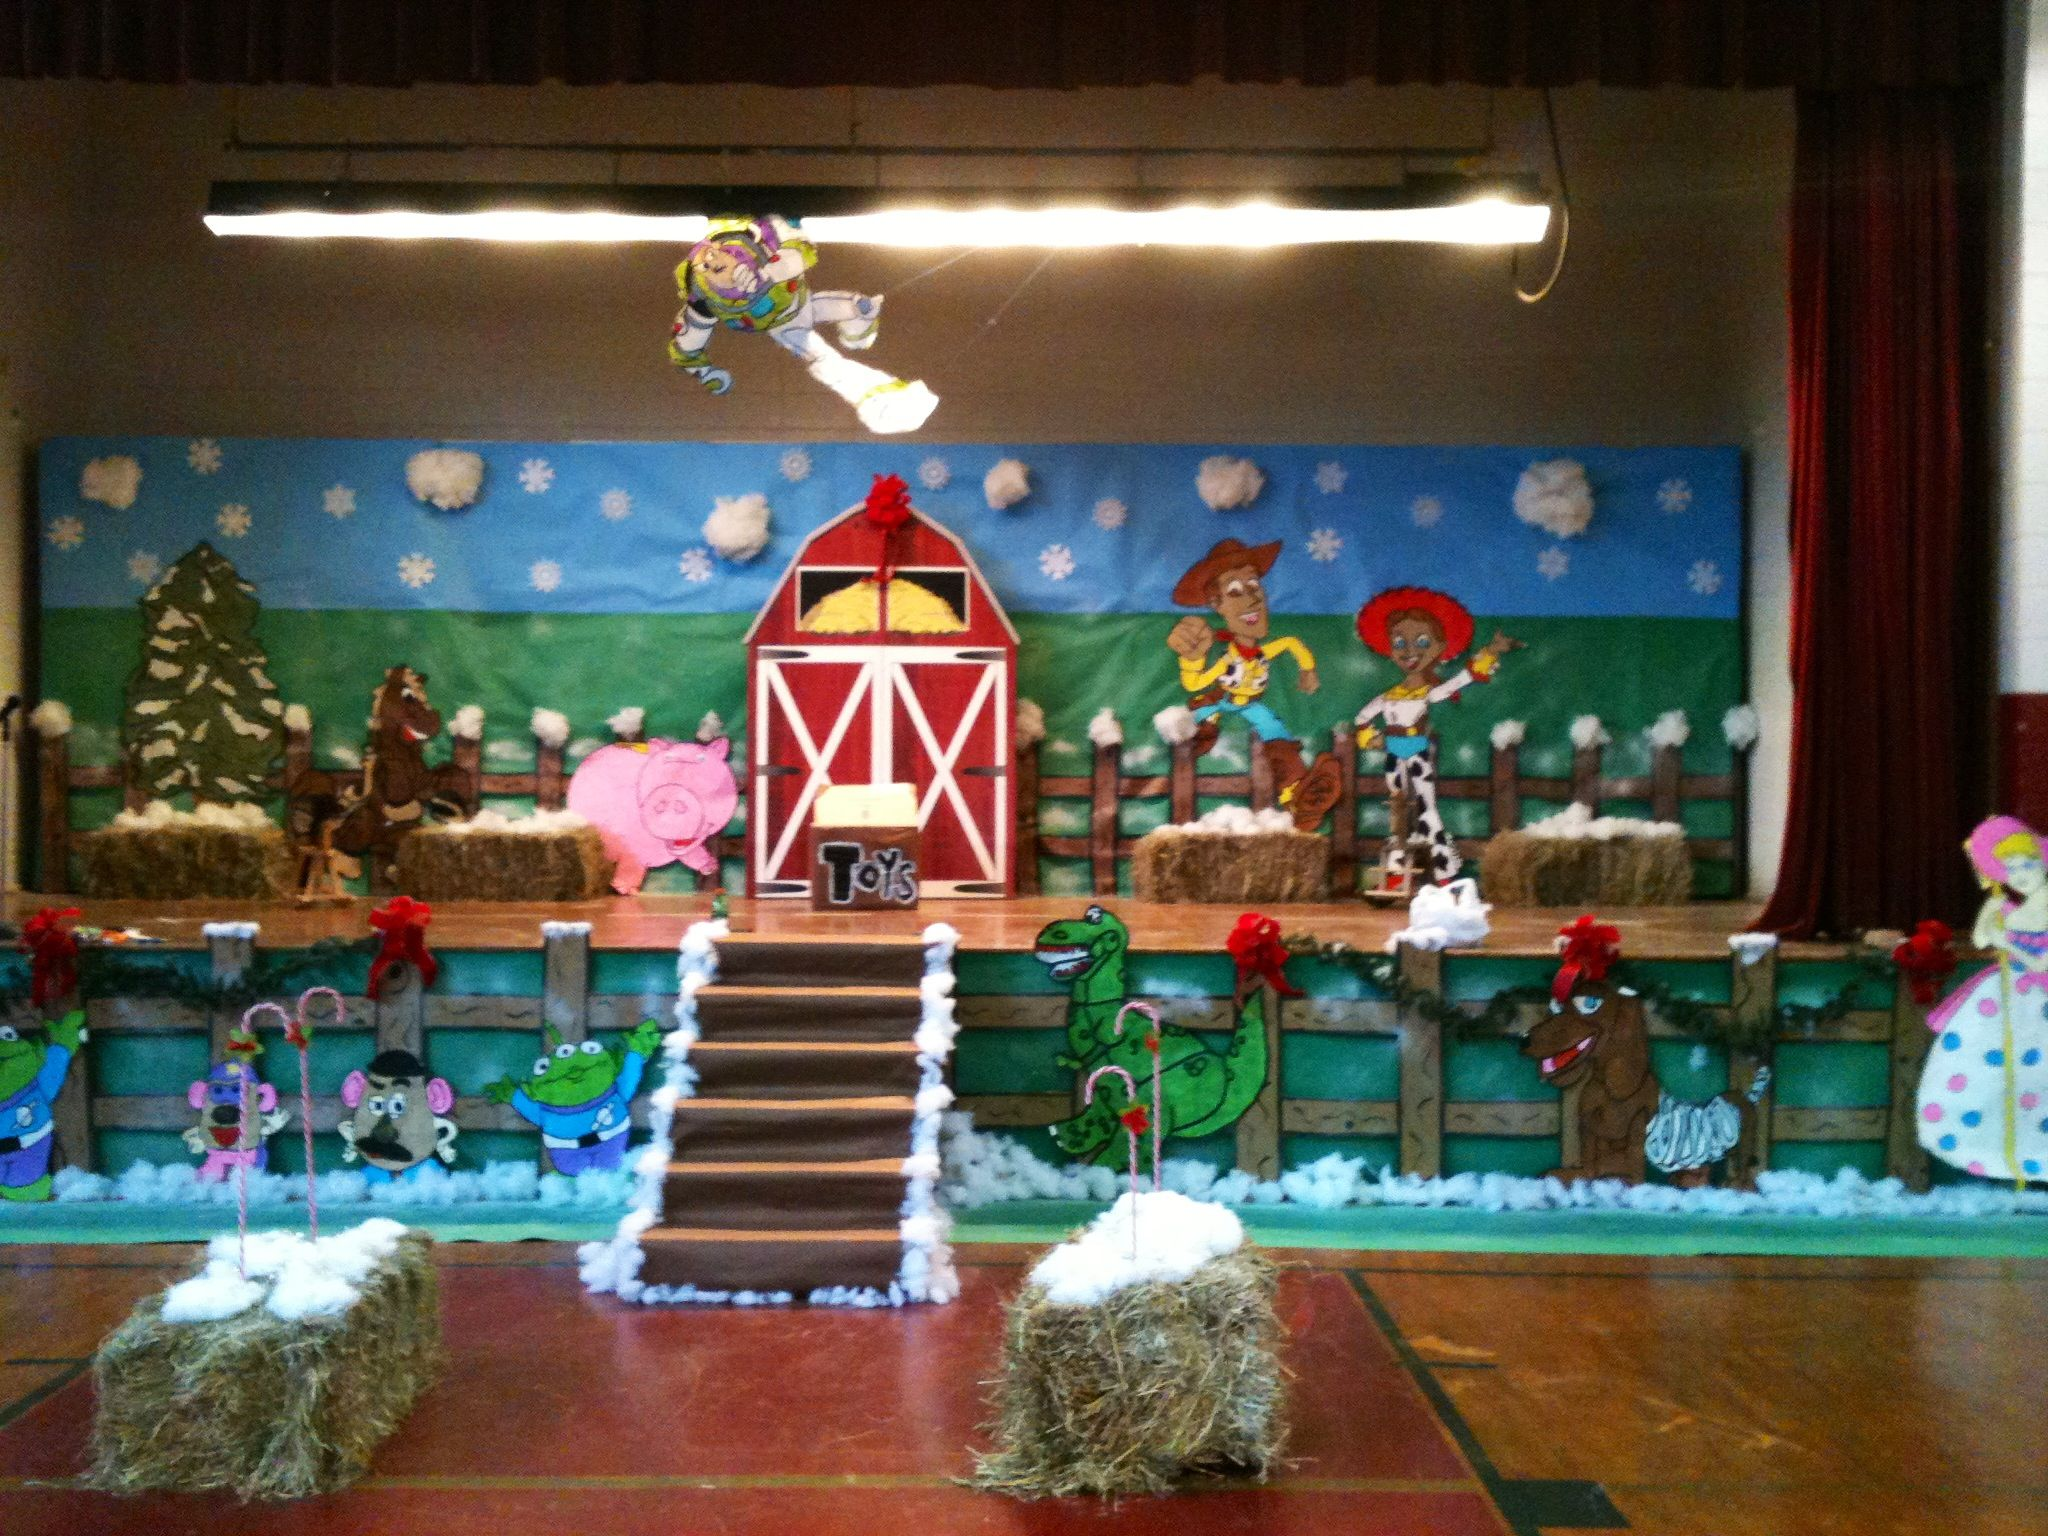 A Toy Story Christmas Play Classroom Decoration